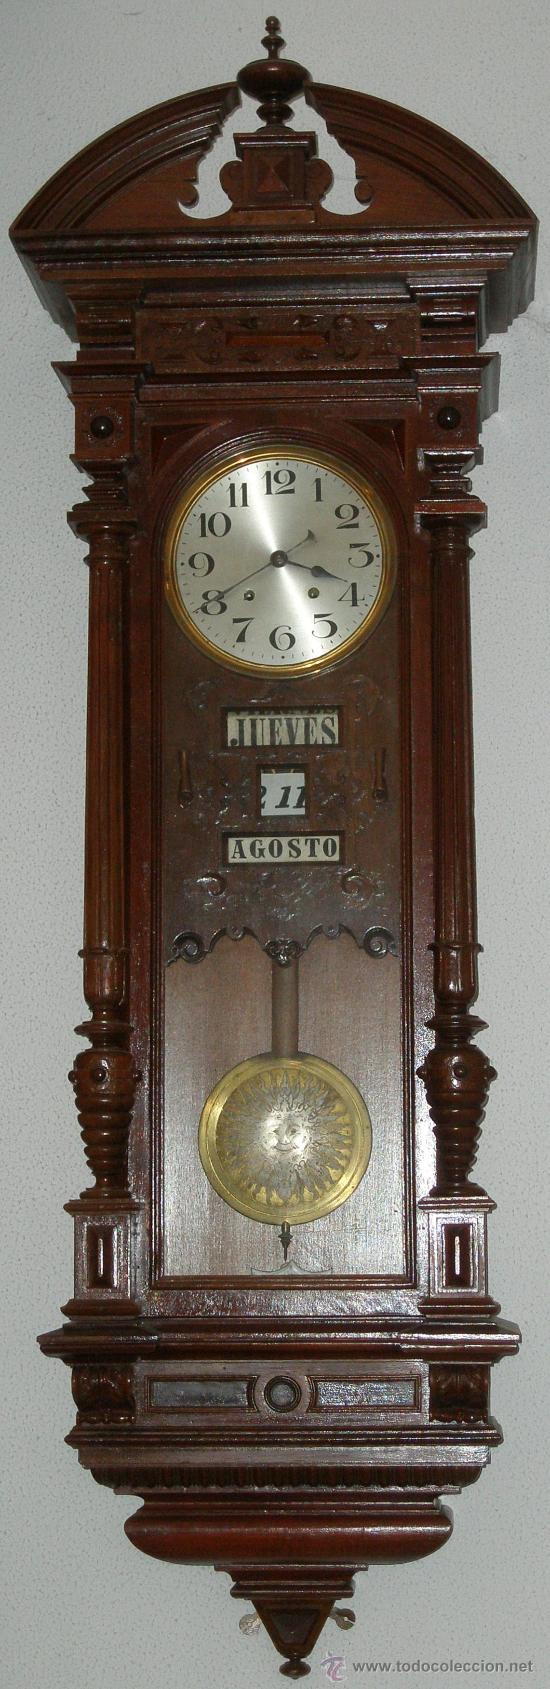 Raro original antiguo reloj pared calendiario comprar for Reloj de pared antiguo